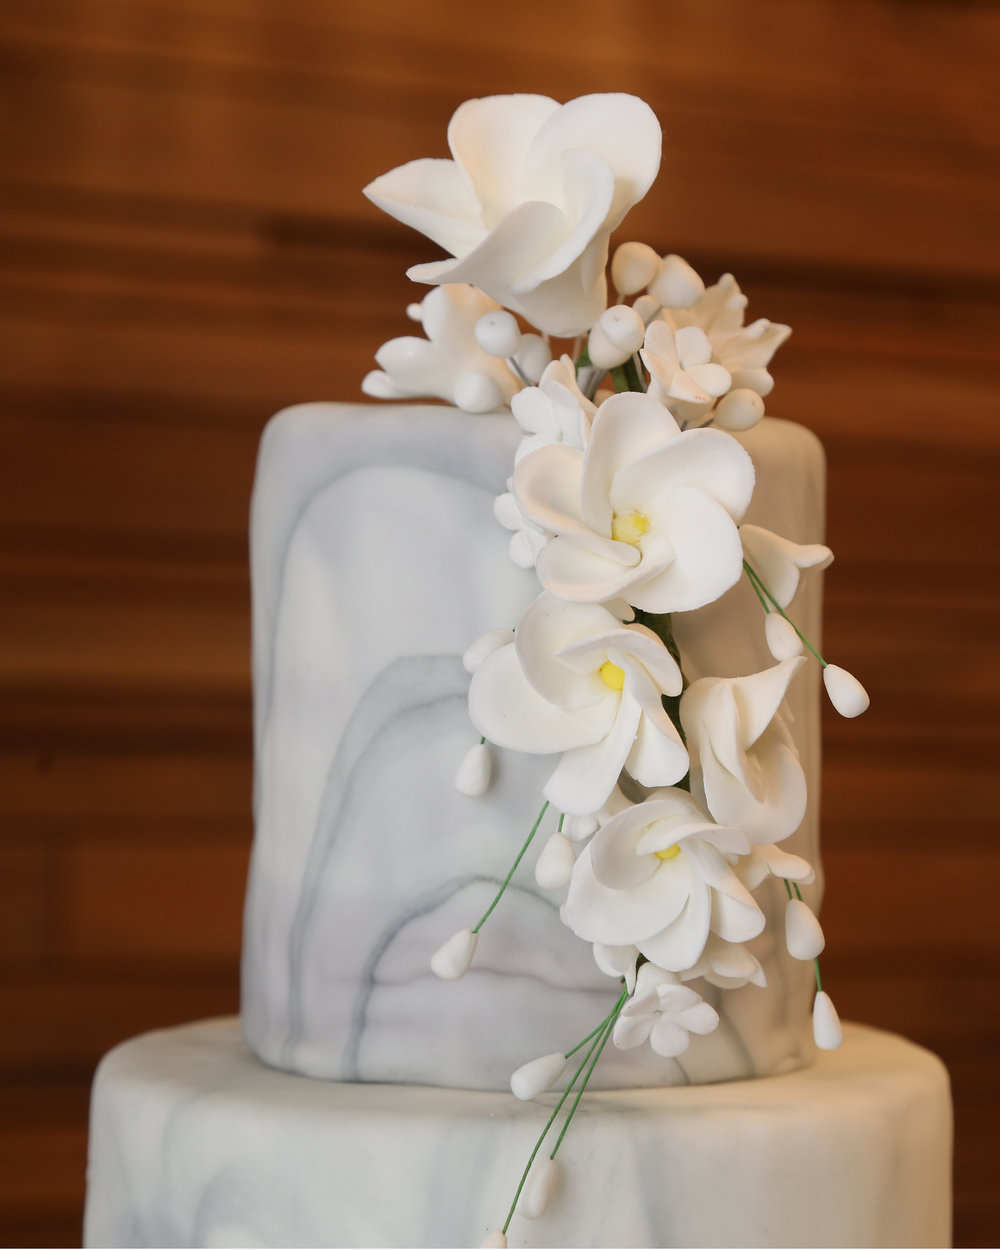 Wedding Cake Detail #4